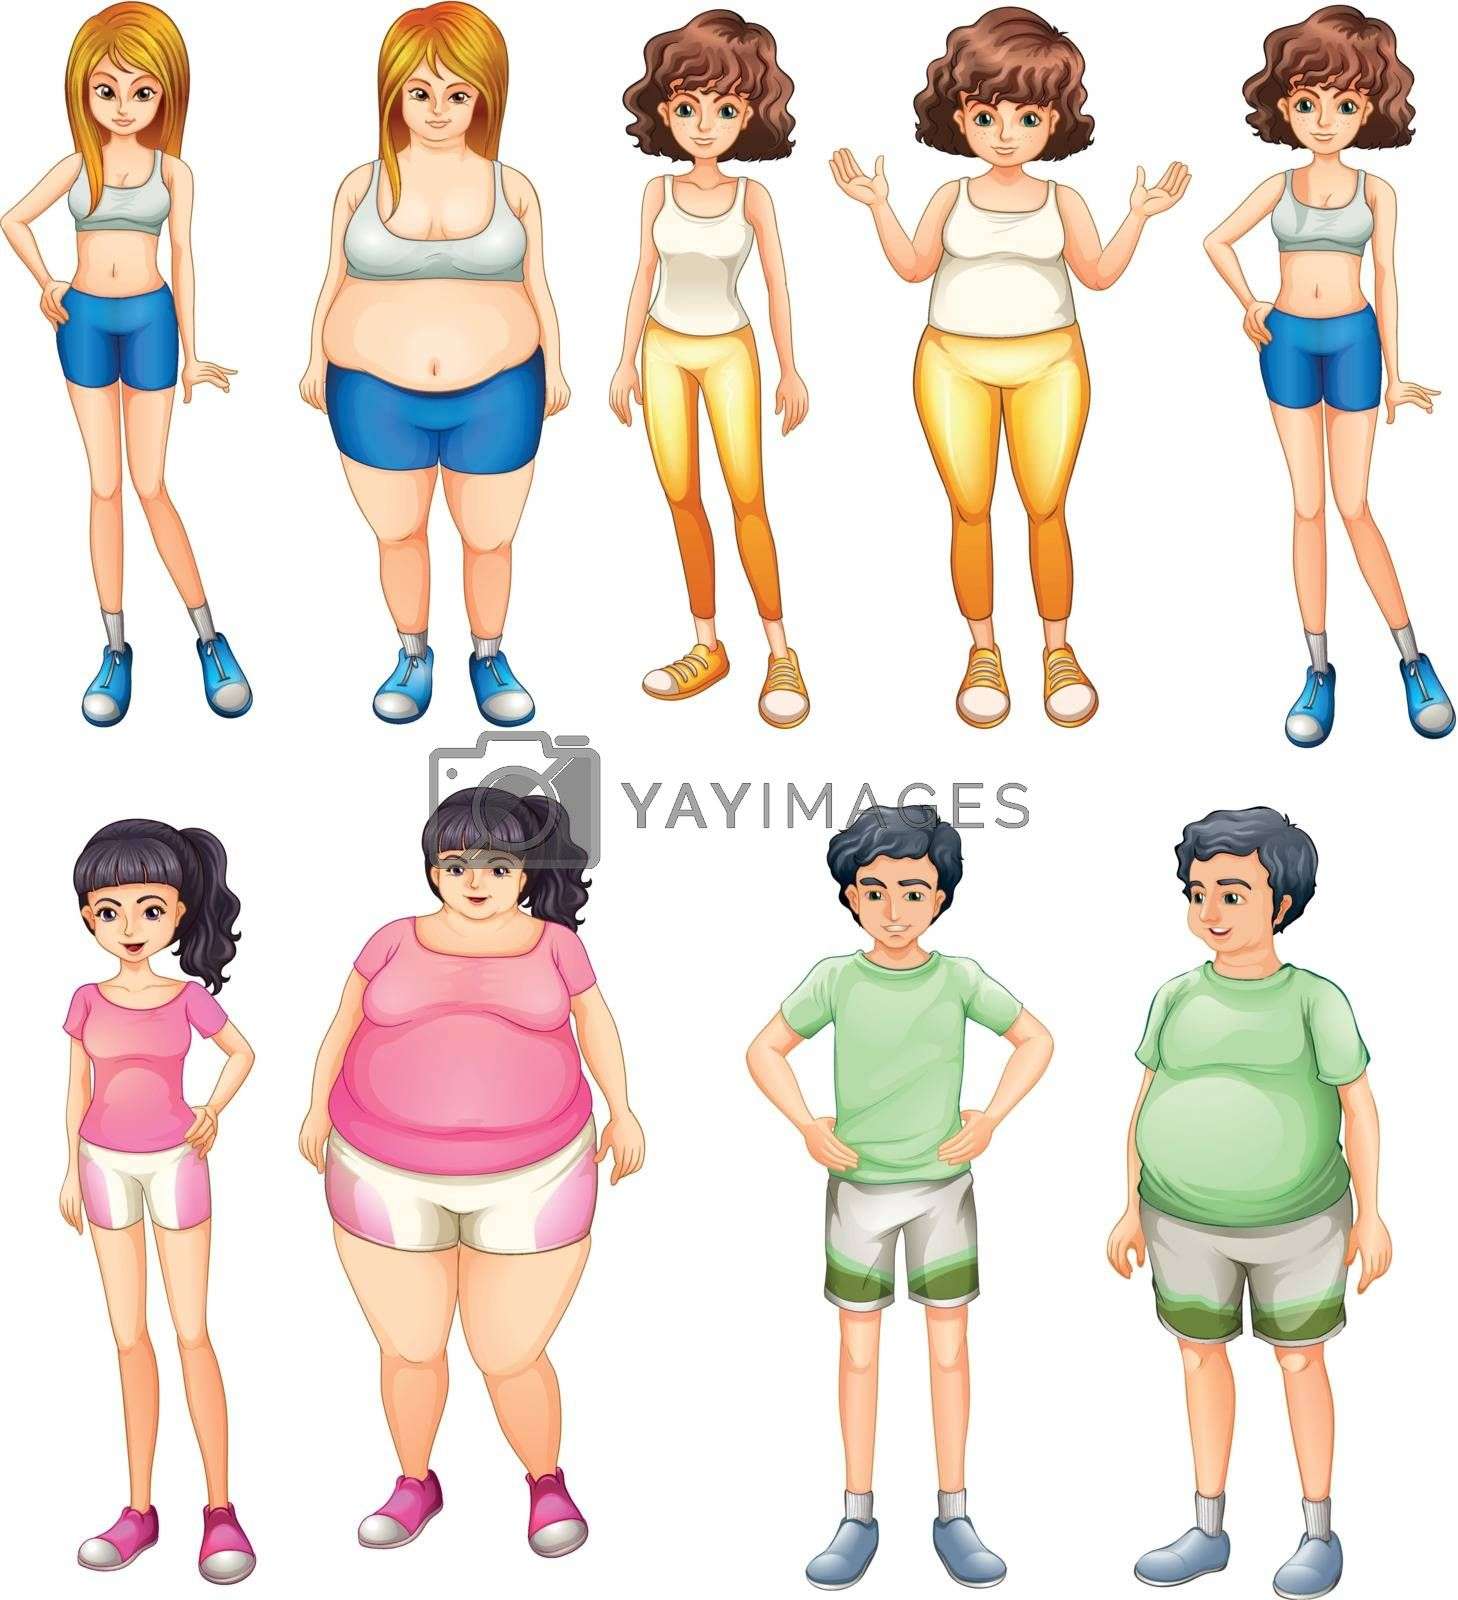 Fat and skinny people by iimages